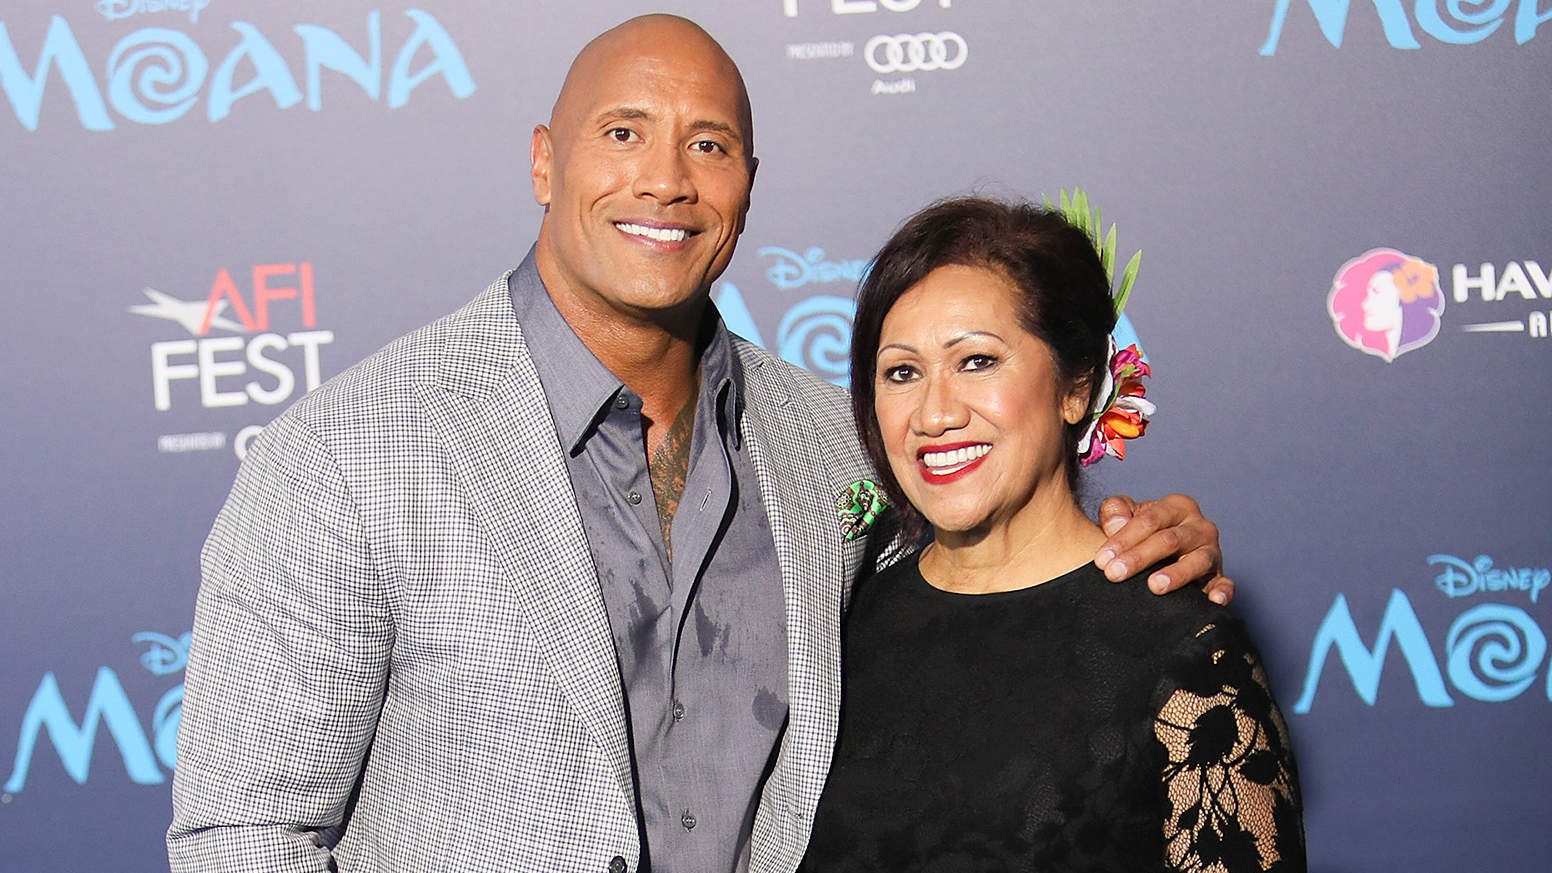 Dwayne Johnson Opens Up About His Mother's Suicide Attempt When He Was Just 15-Years-Old